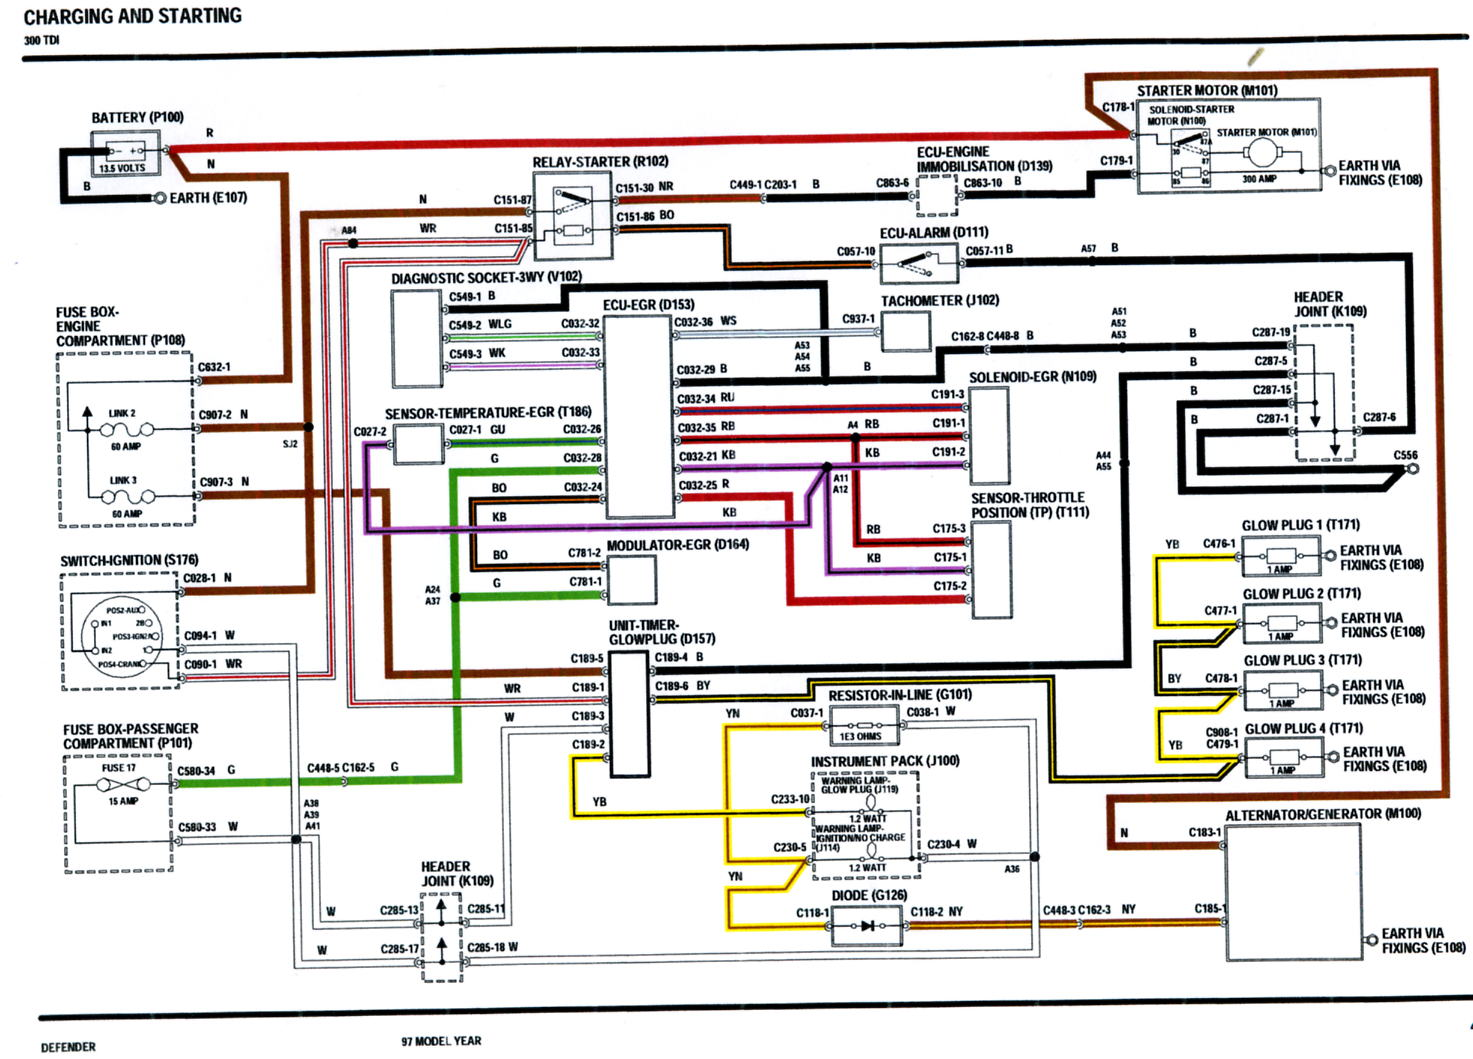 4 wire stove plug wiring diagram access industries porch lift engine compartment fuse box and glow plugs defender forum